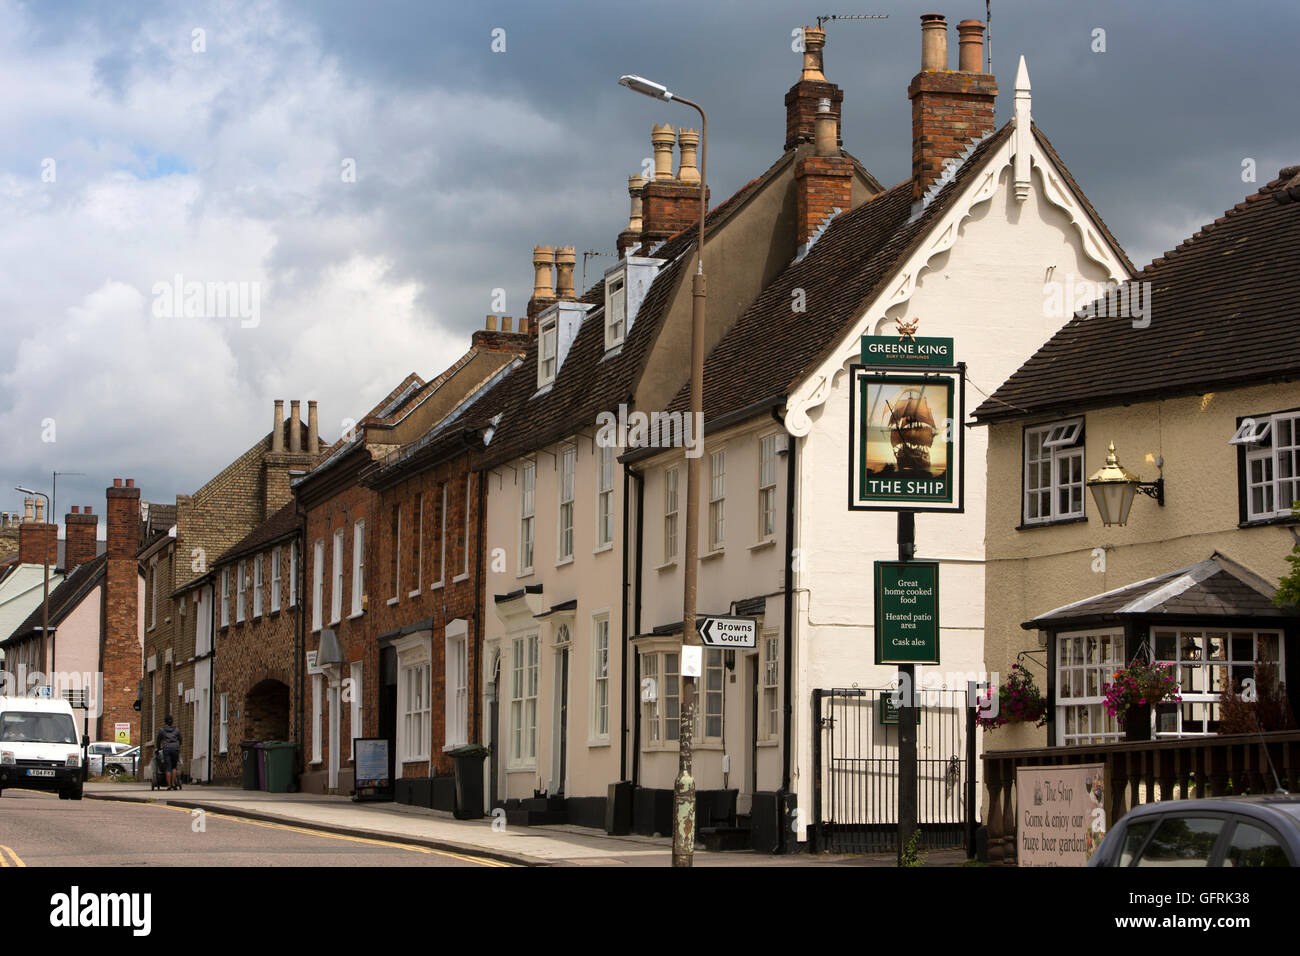 UK, England, Bedfordshire, Bedford, St Cuthbert Street, historic houses and Ship pub - Stock Image